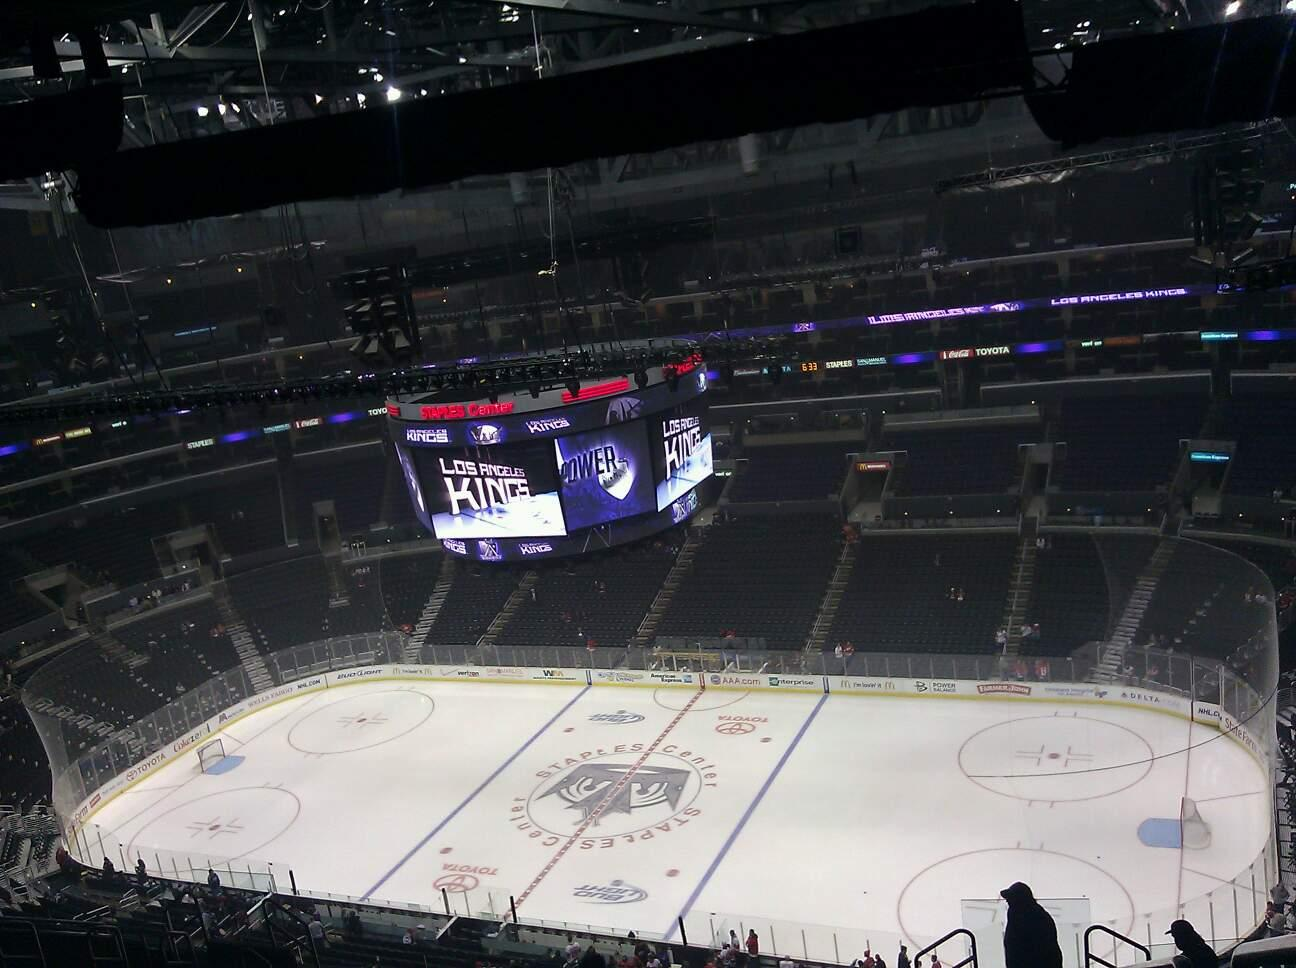 Staples Center Section 333 Row 1 Seat 11